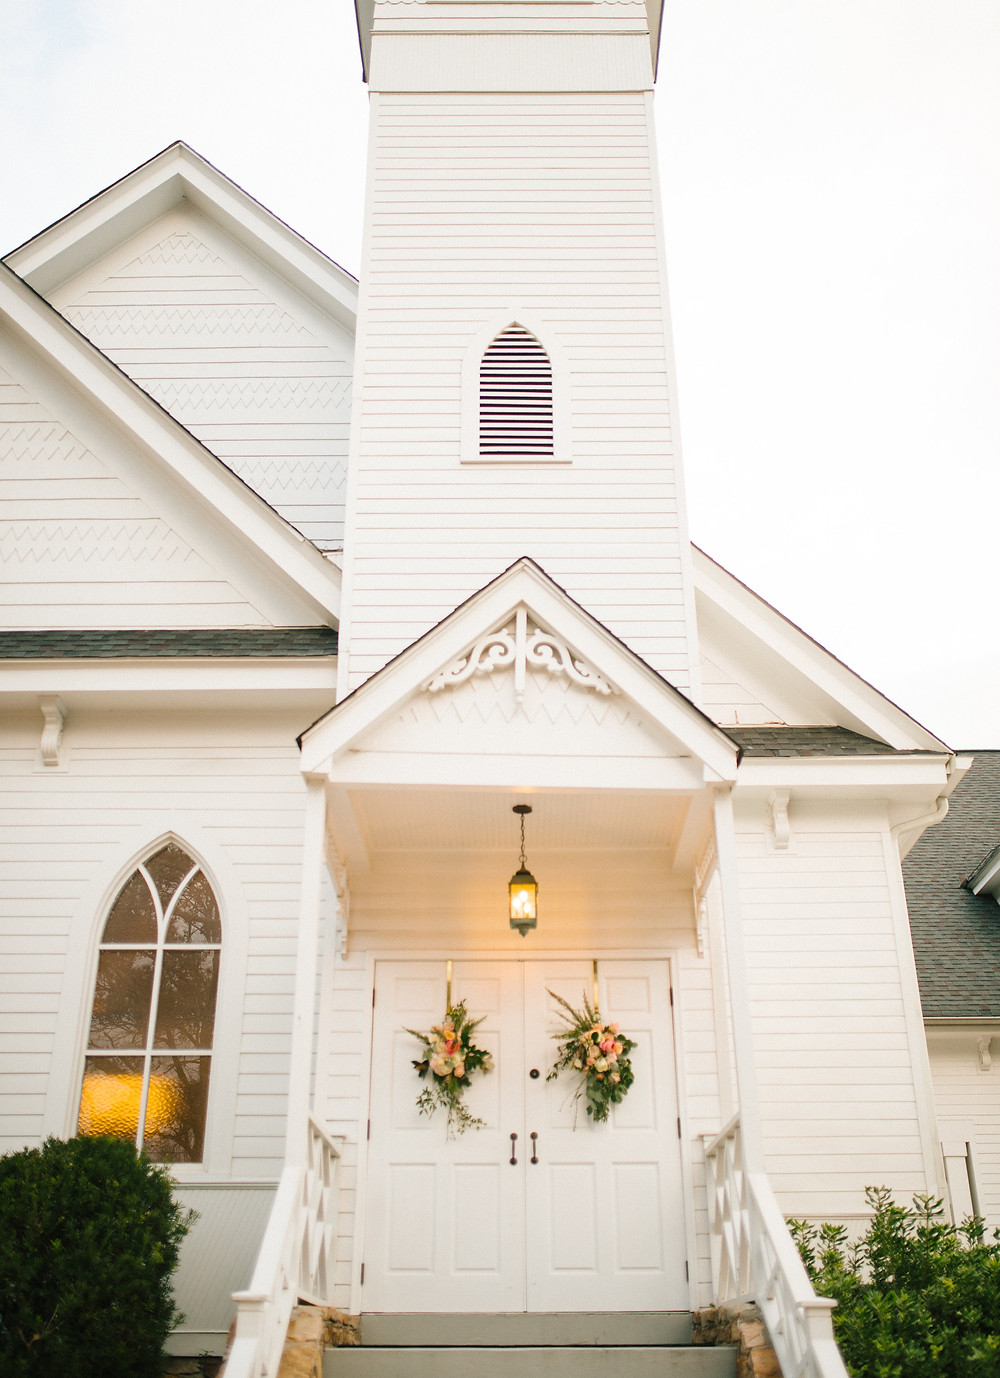 Altamont church, birmingham, al wedding